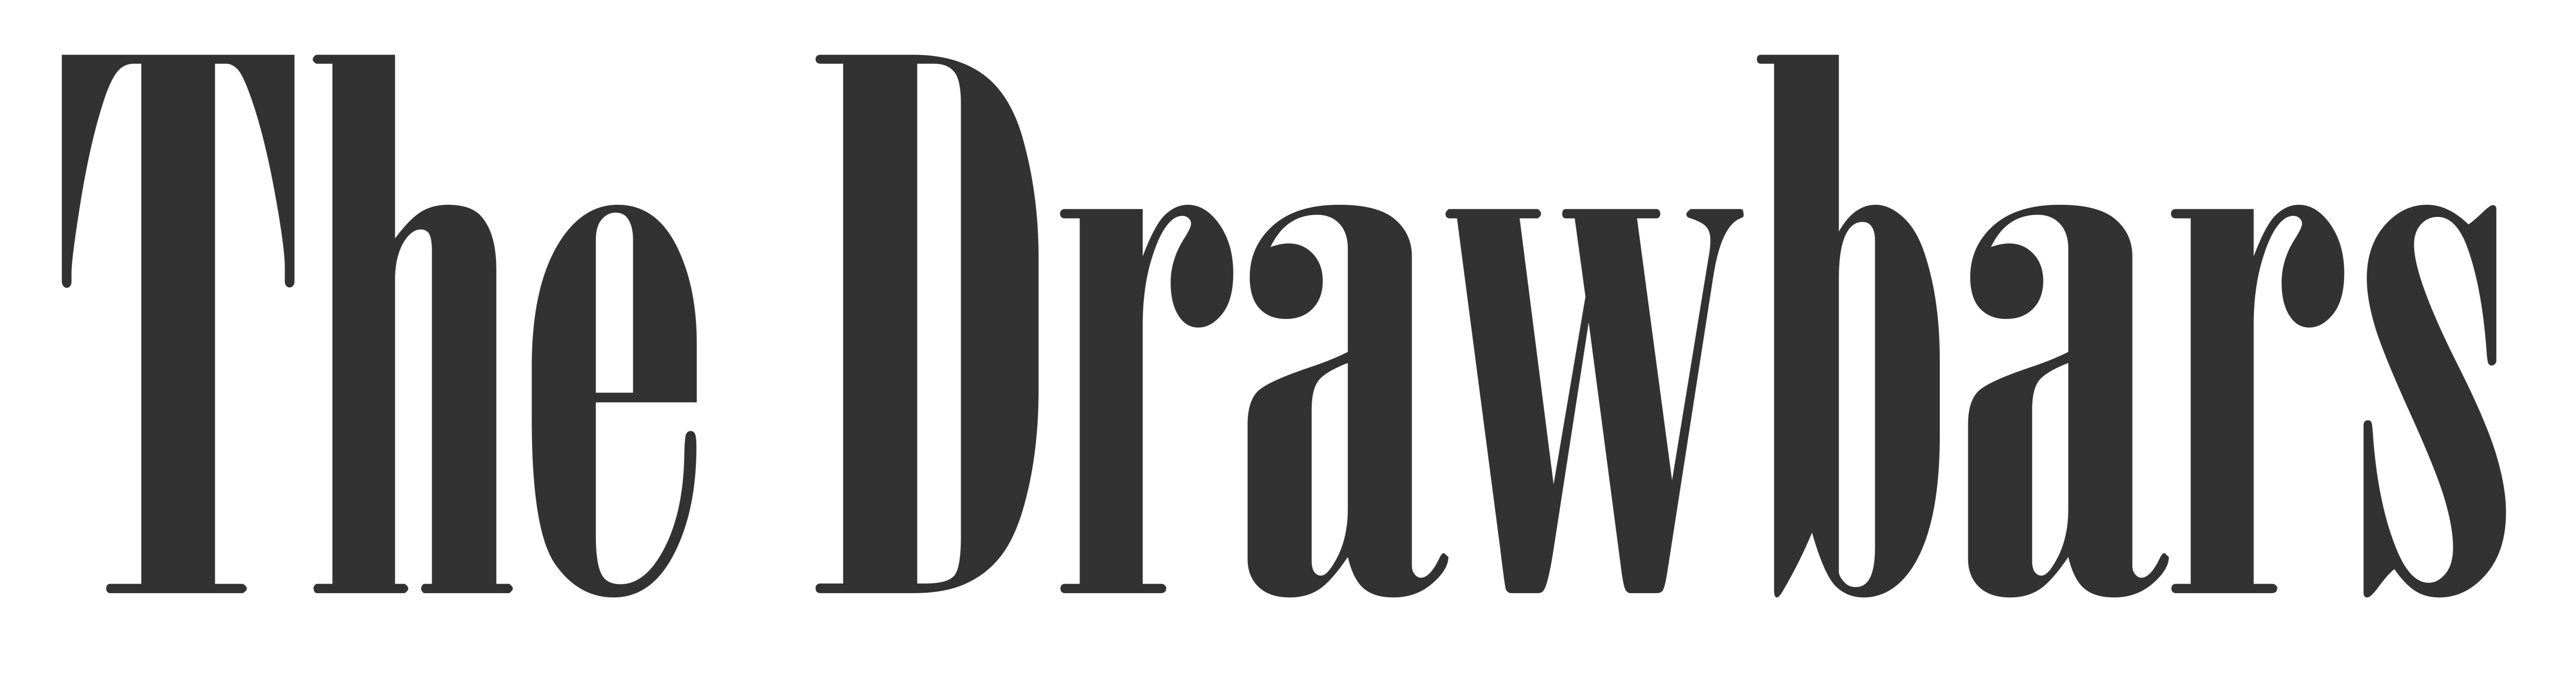 thedrawbars.band